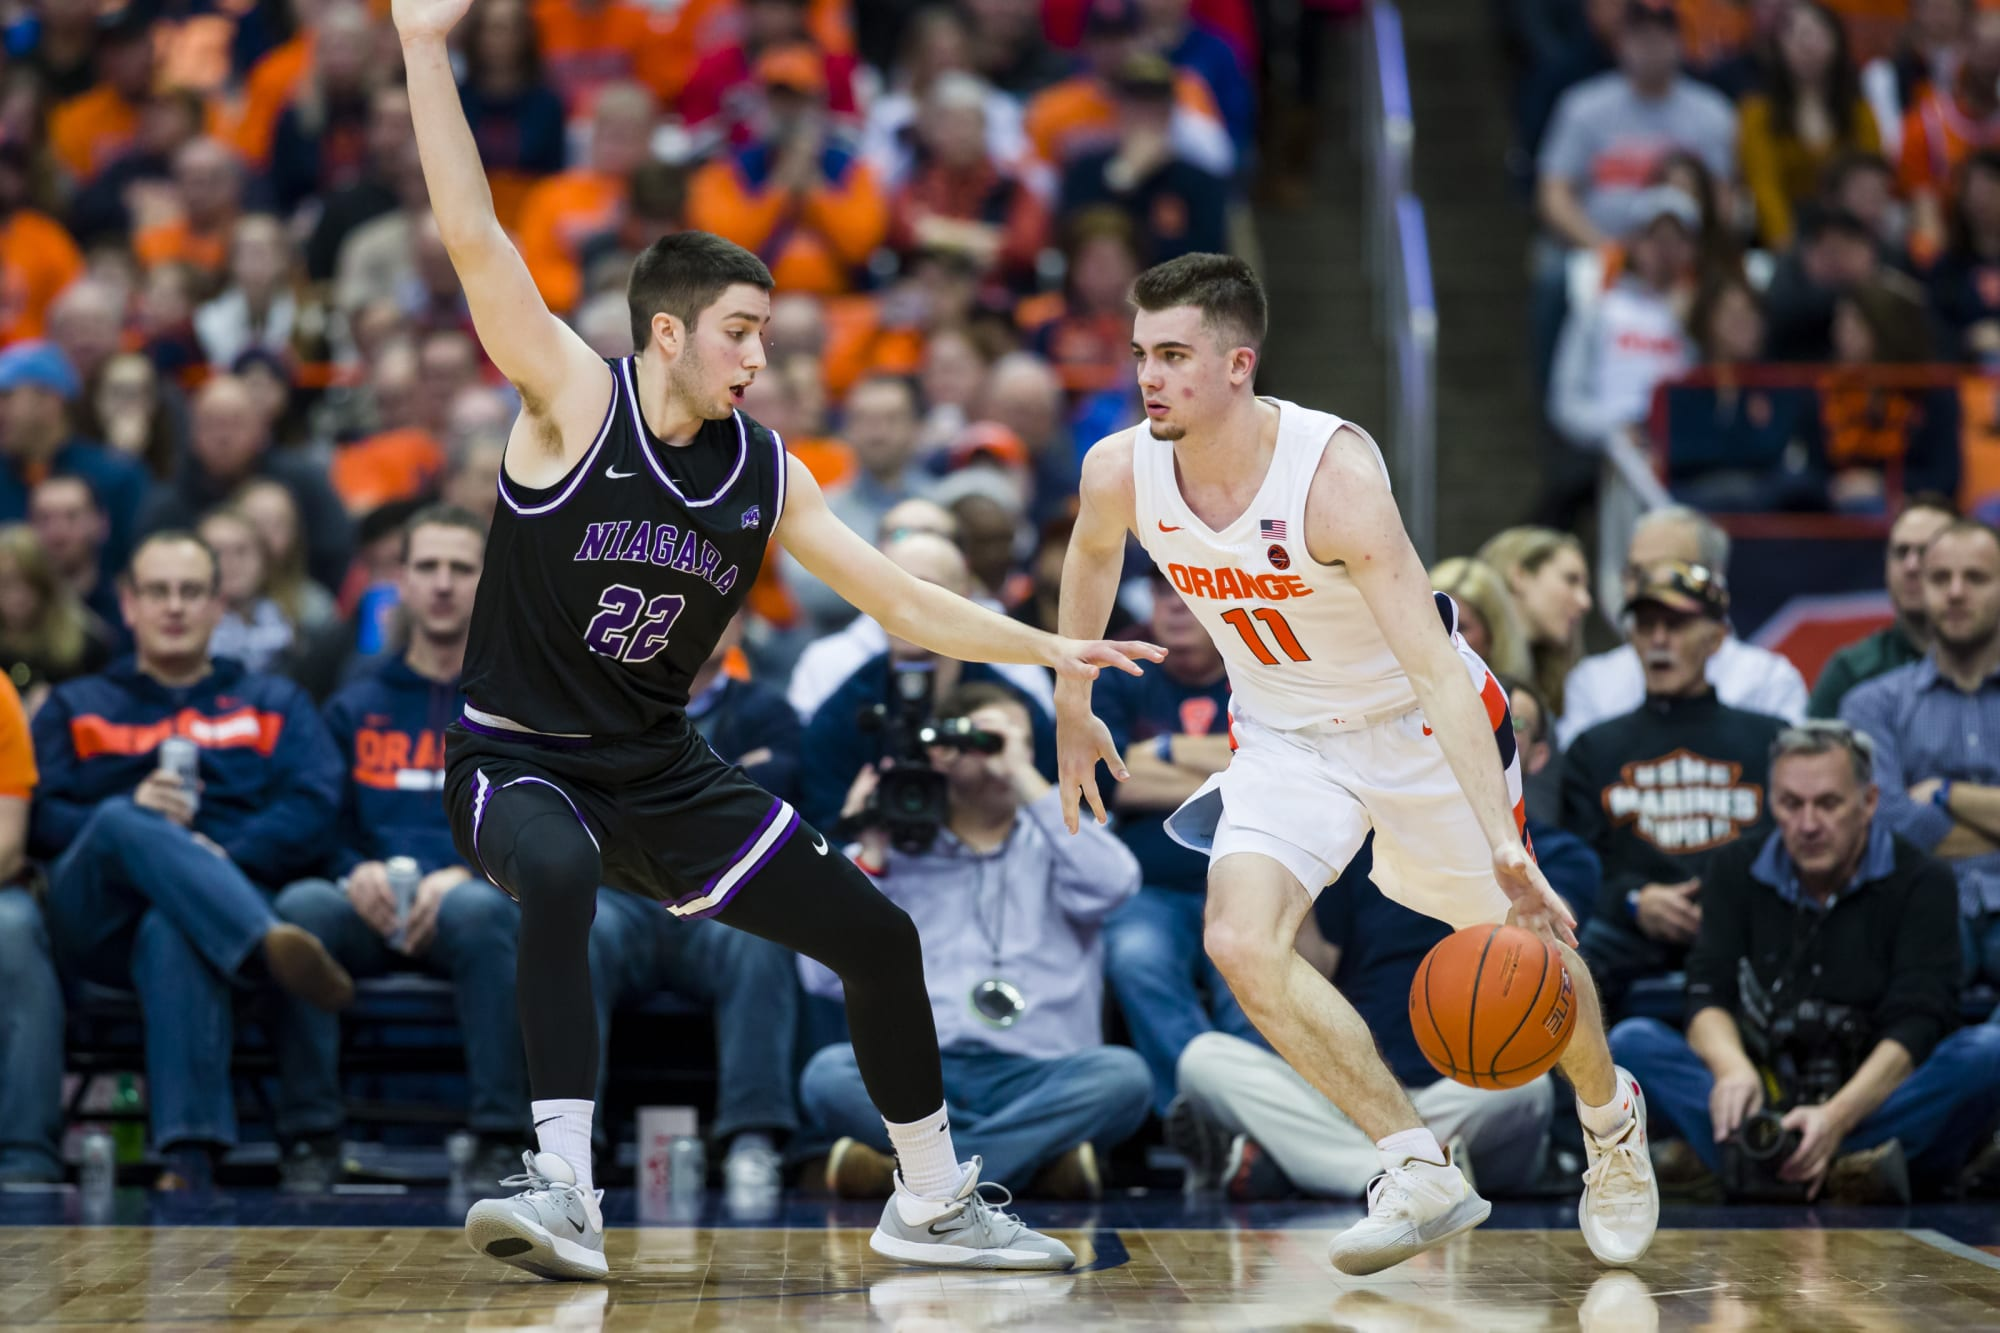 Syracuse basketball is the best team in a competitive New York state